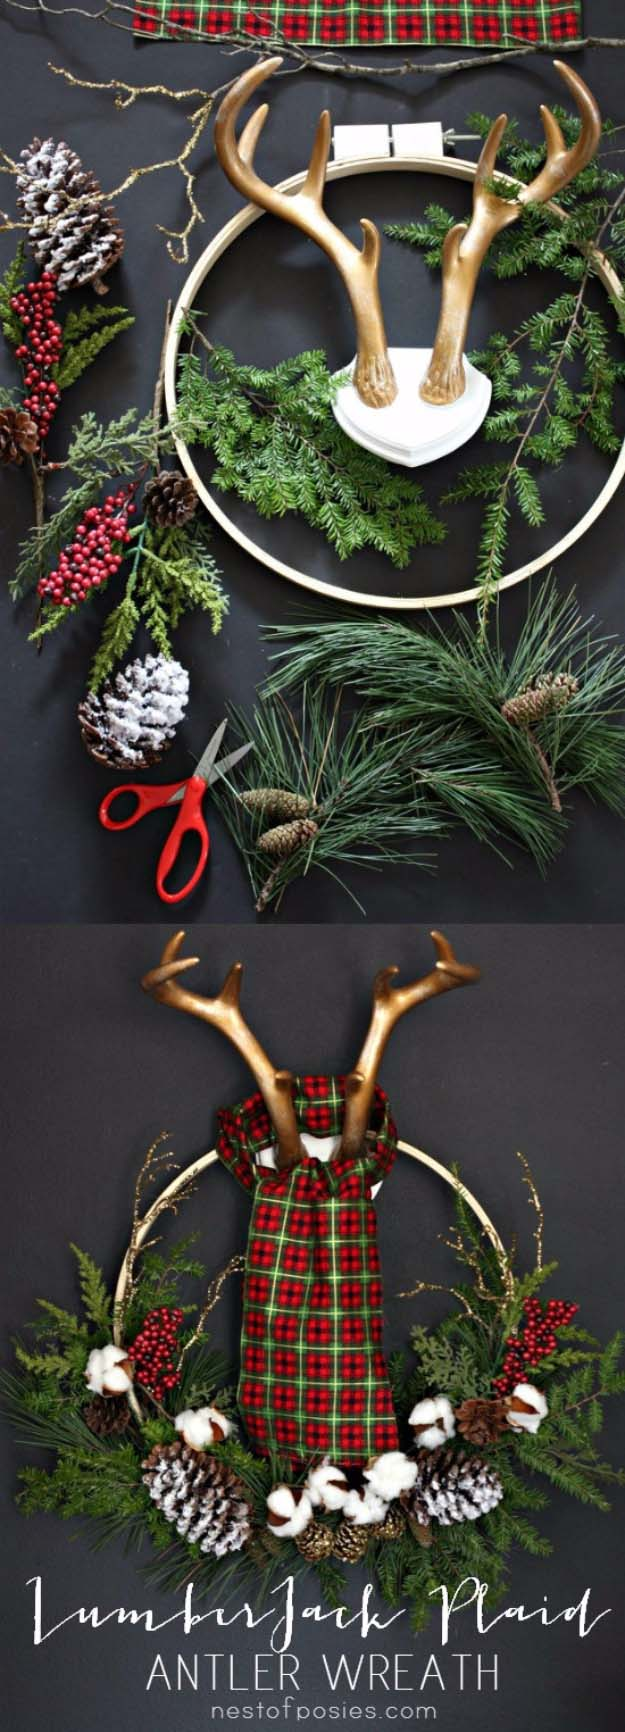 DIY Holiday Wreaths Make Awesome Homemade Christmas Decorations for Your Front Door | Cool Crafts and DIY Projects by DIY JOY | Lumberjack Plaid Antler Wreath | http://diyjoy.com/diy-christmas-decorations-wreaths